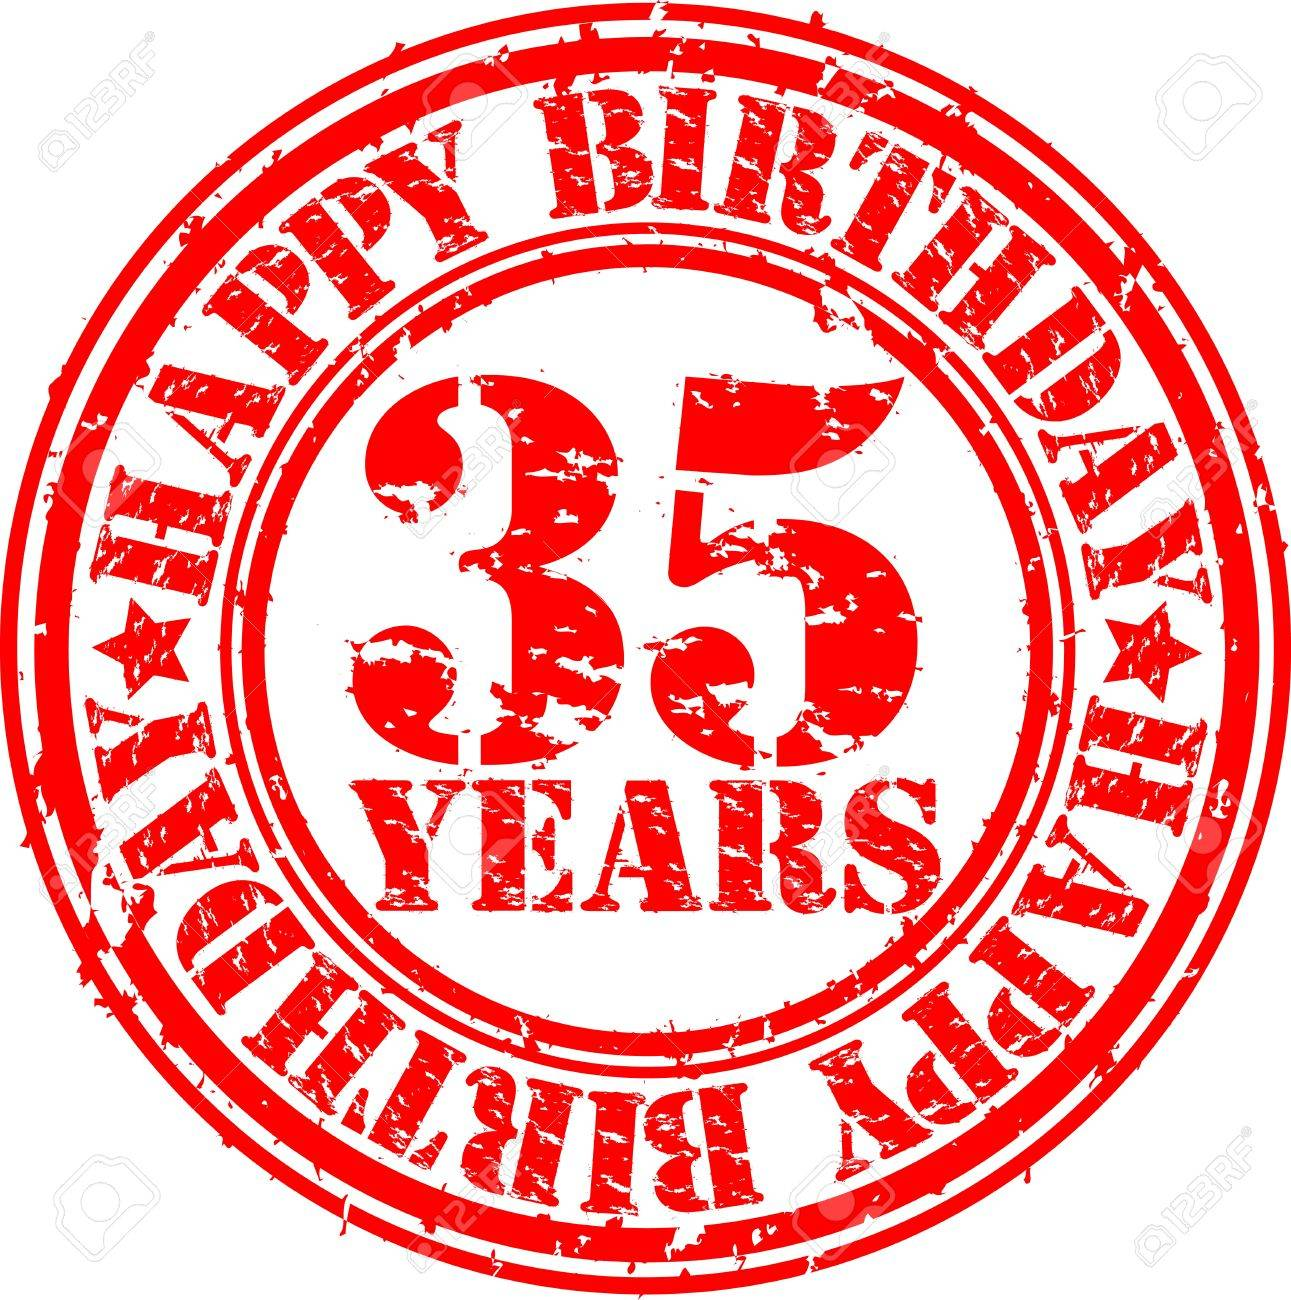 Grunge 35 years happy birthday rubber stamp, vector illustration Stock Vector - 13610813